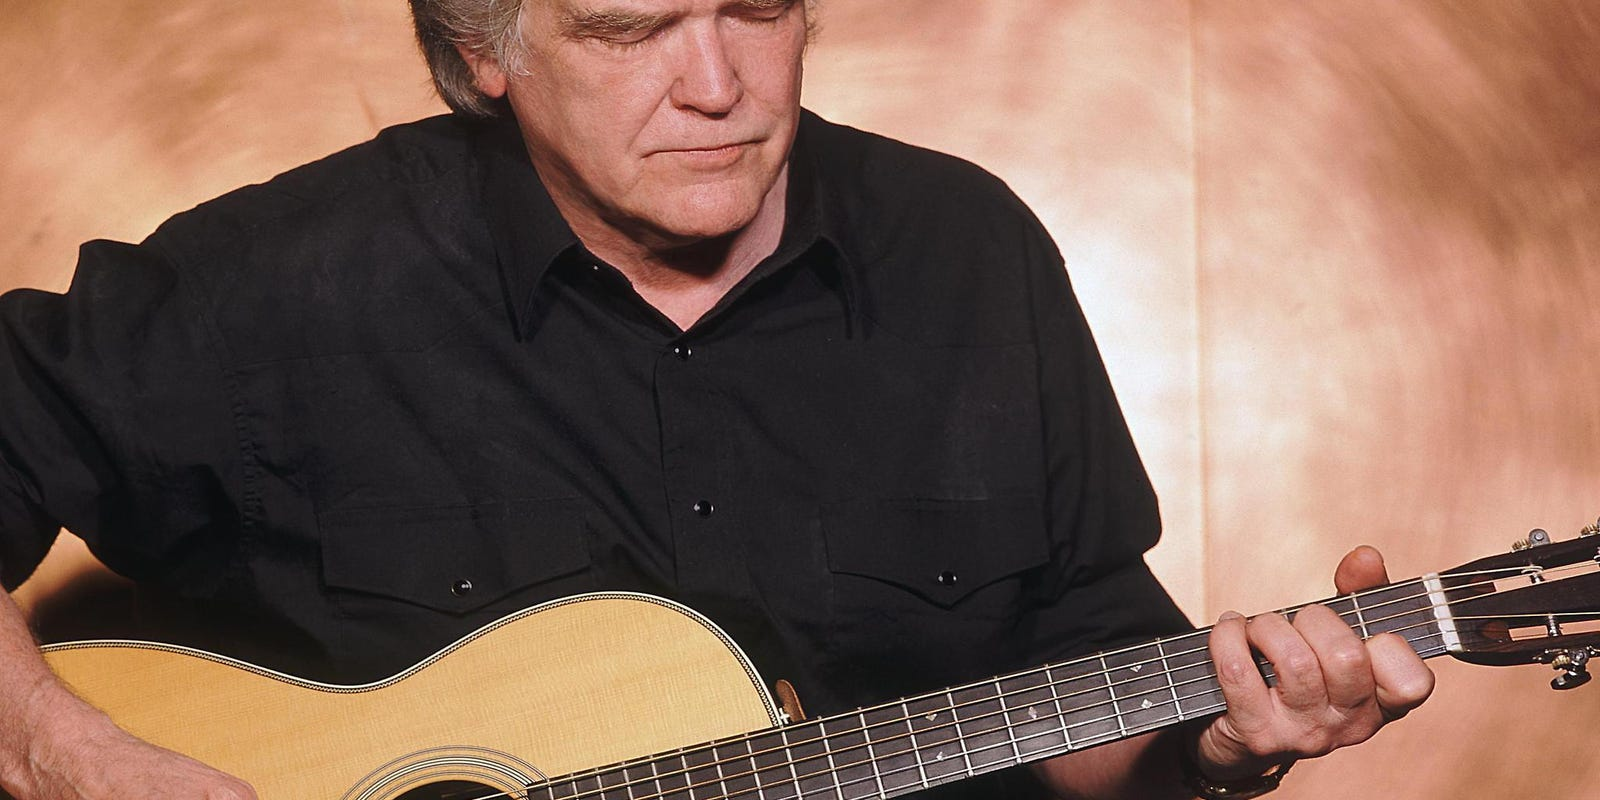 Obituary Singer Songwriter Guy Clark Helped Expand The Boundaries Of Country Music